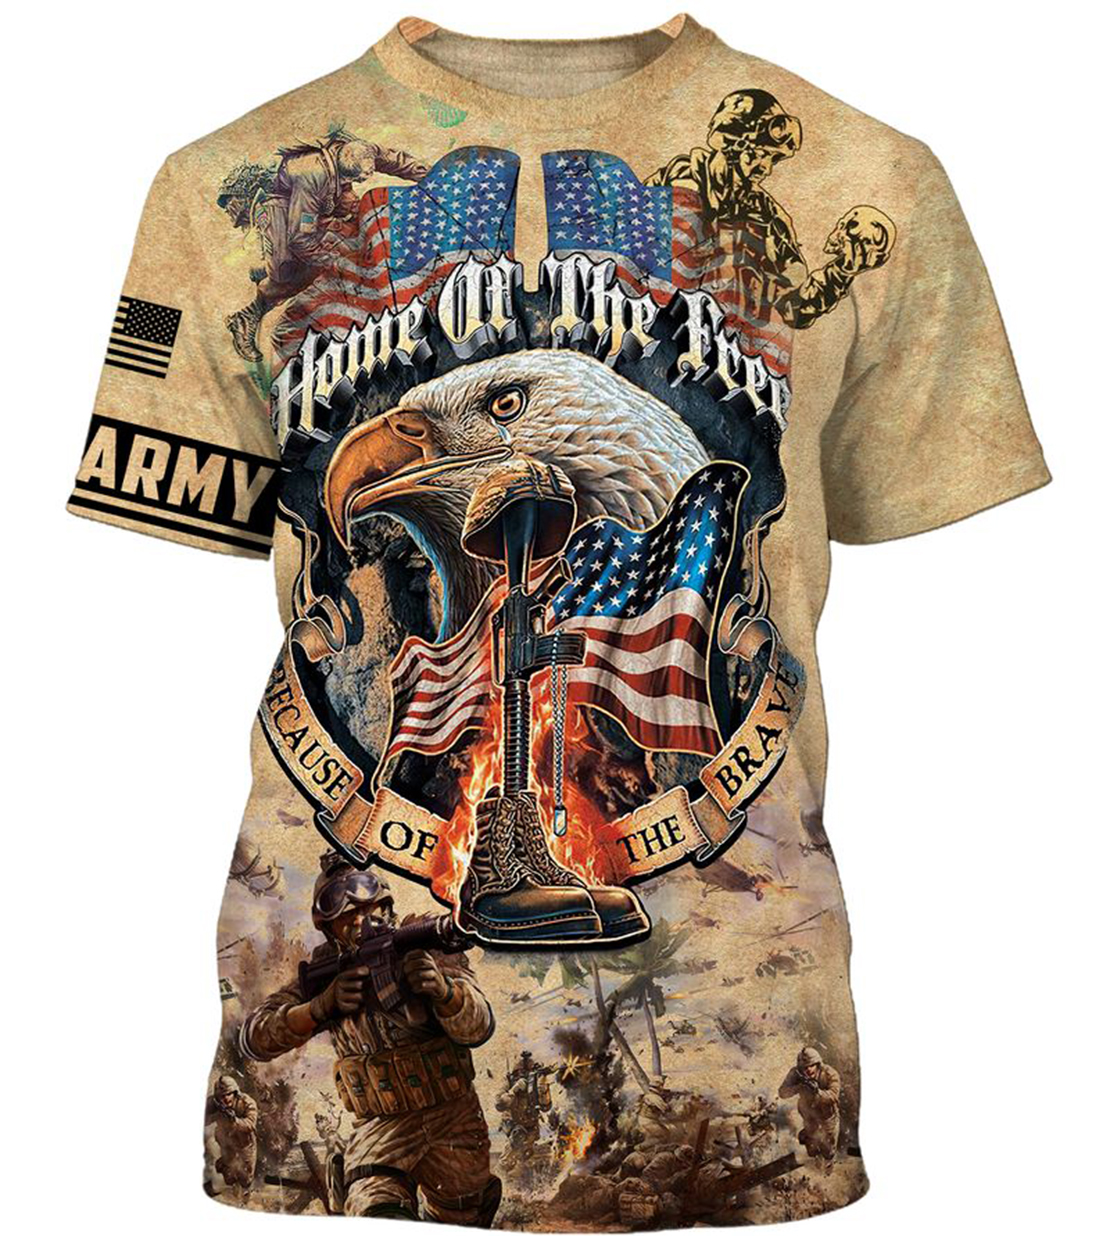 Army veteran Home of the free because of the brave 3d t-shirt